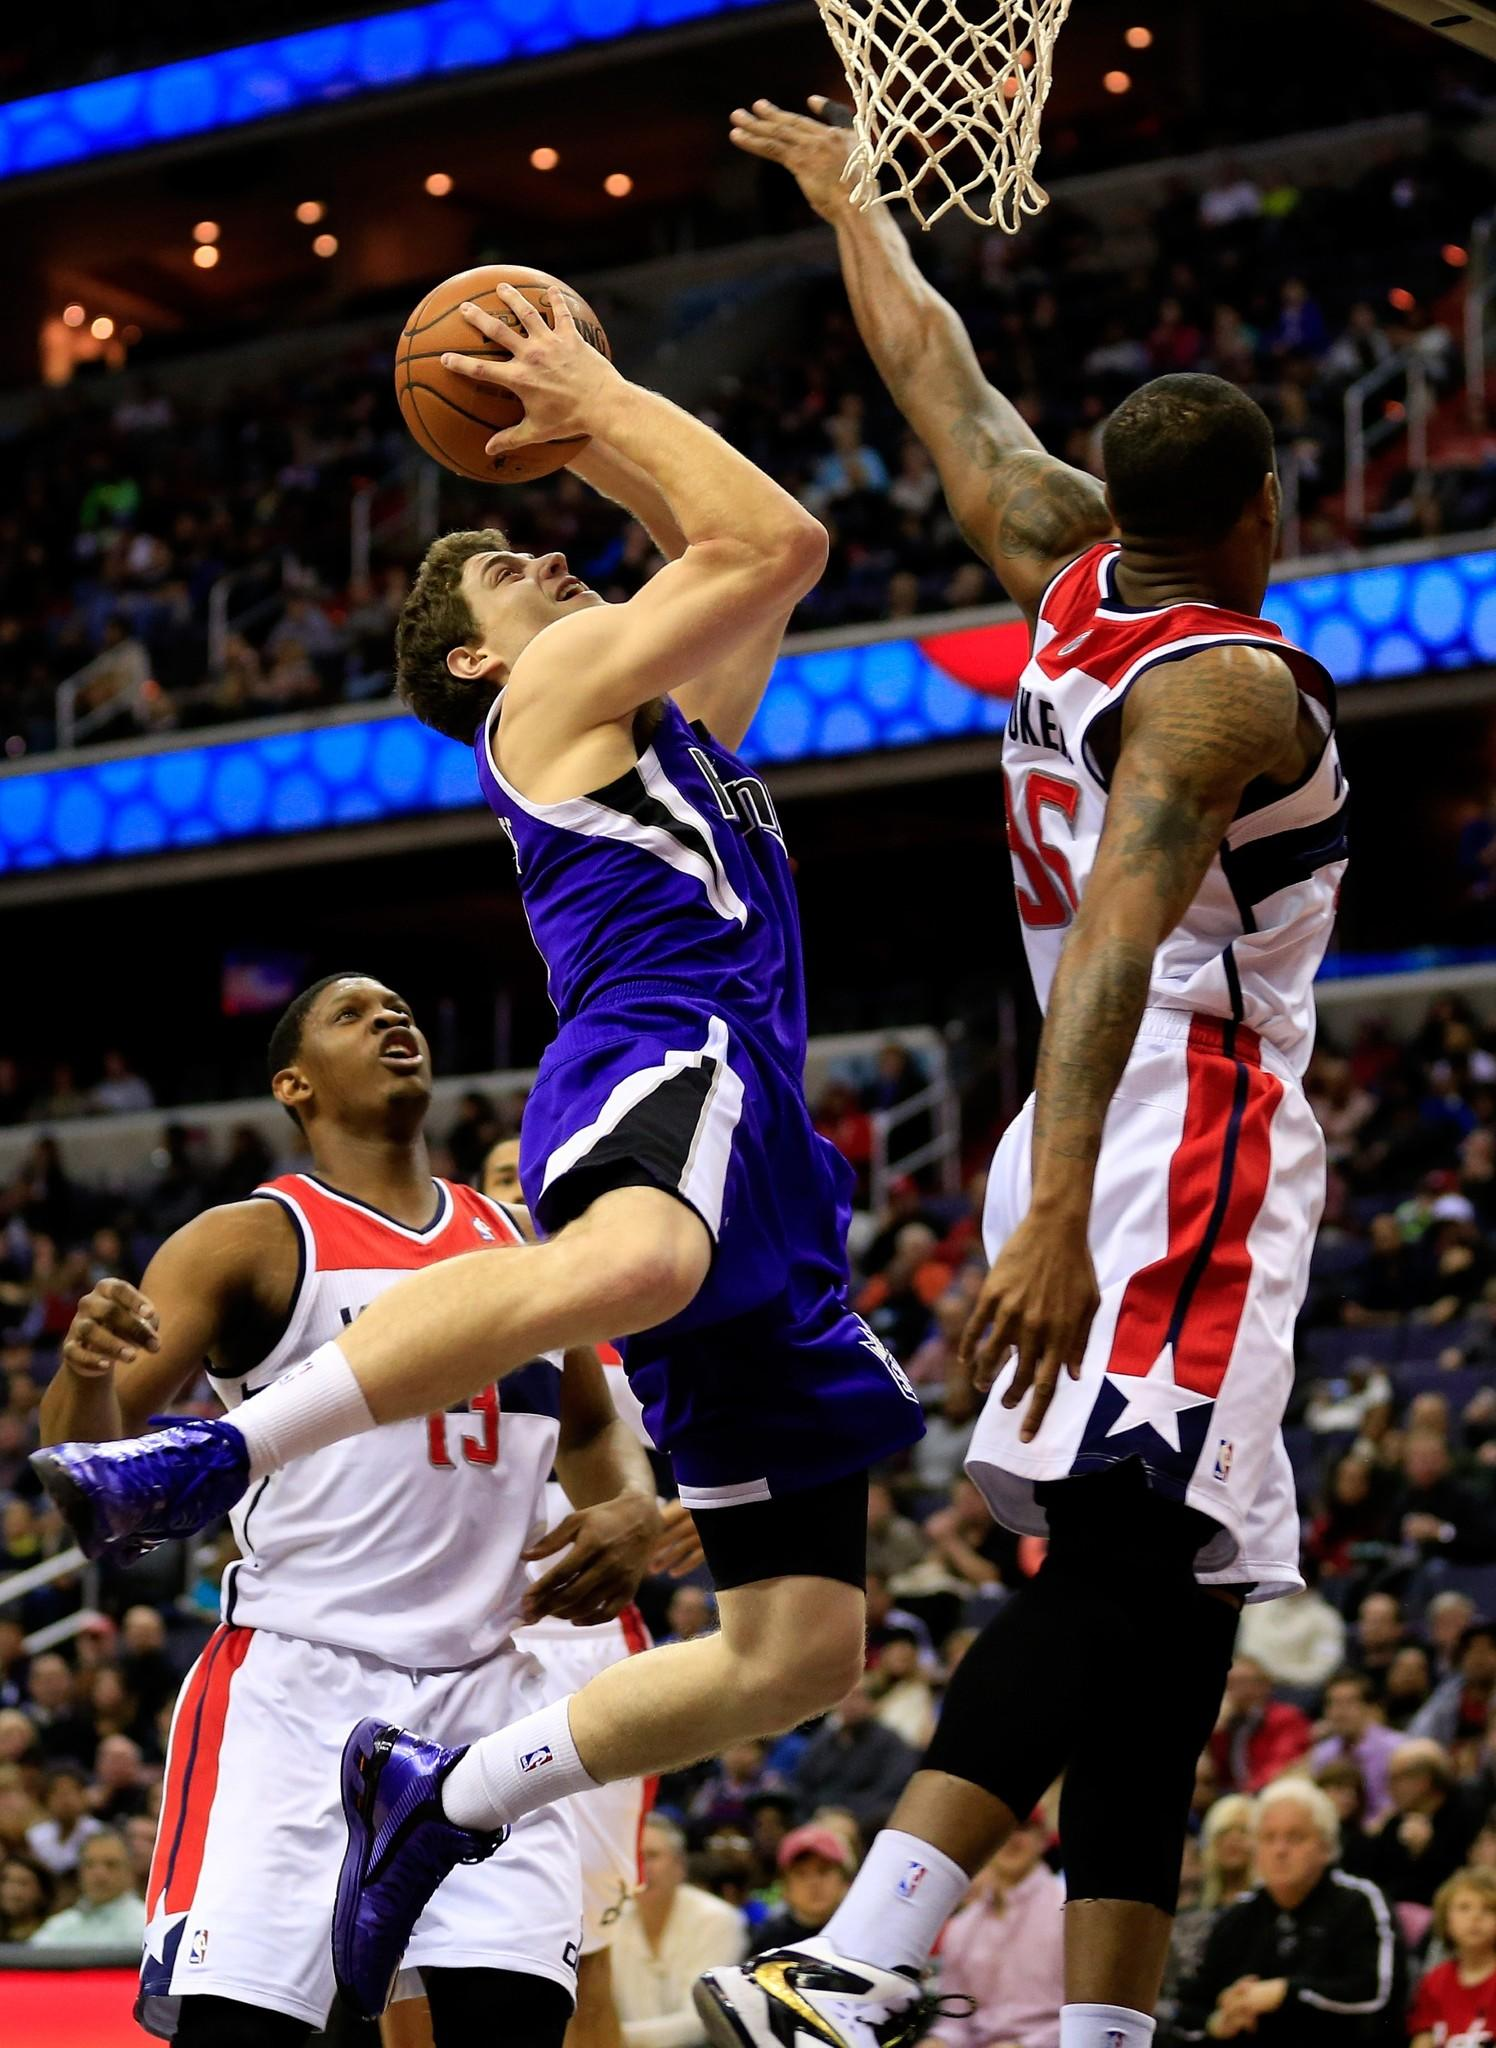 Jimmer Fredette (7) of the Sacramento Kings puts up a shot in front of Trevor Booker #35 of the Washington Wizards during the first half at Verizon Center on February 9, 2014 in Washington, DC.